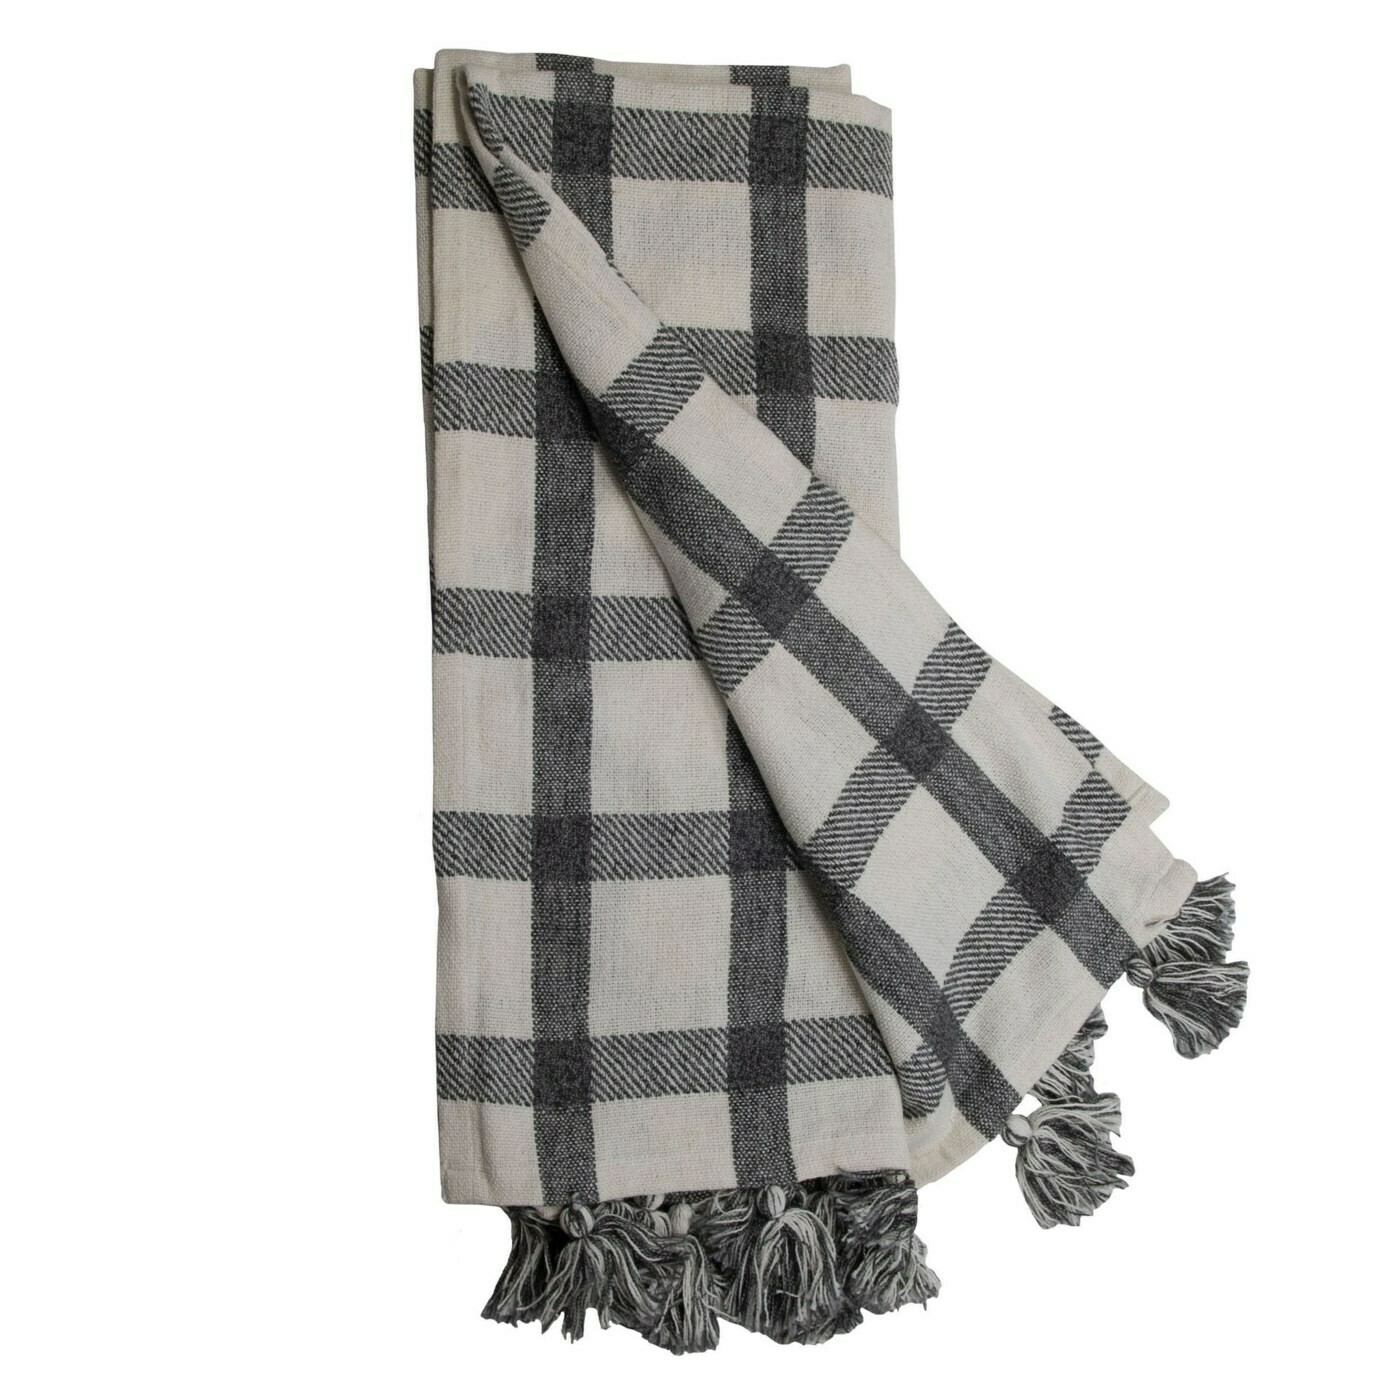 Jacqueline Hand Woven Throw Black